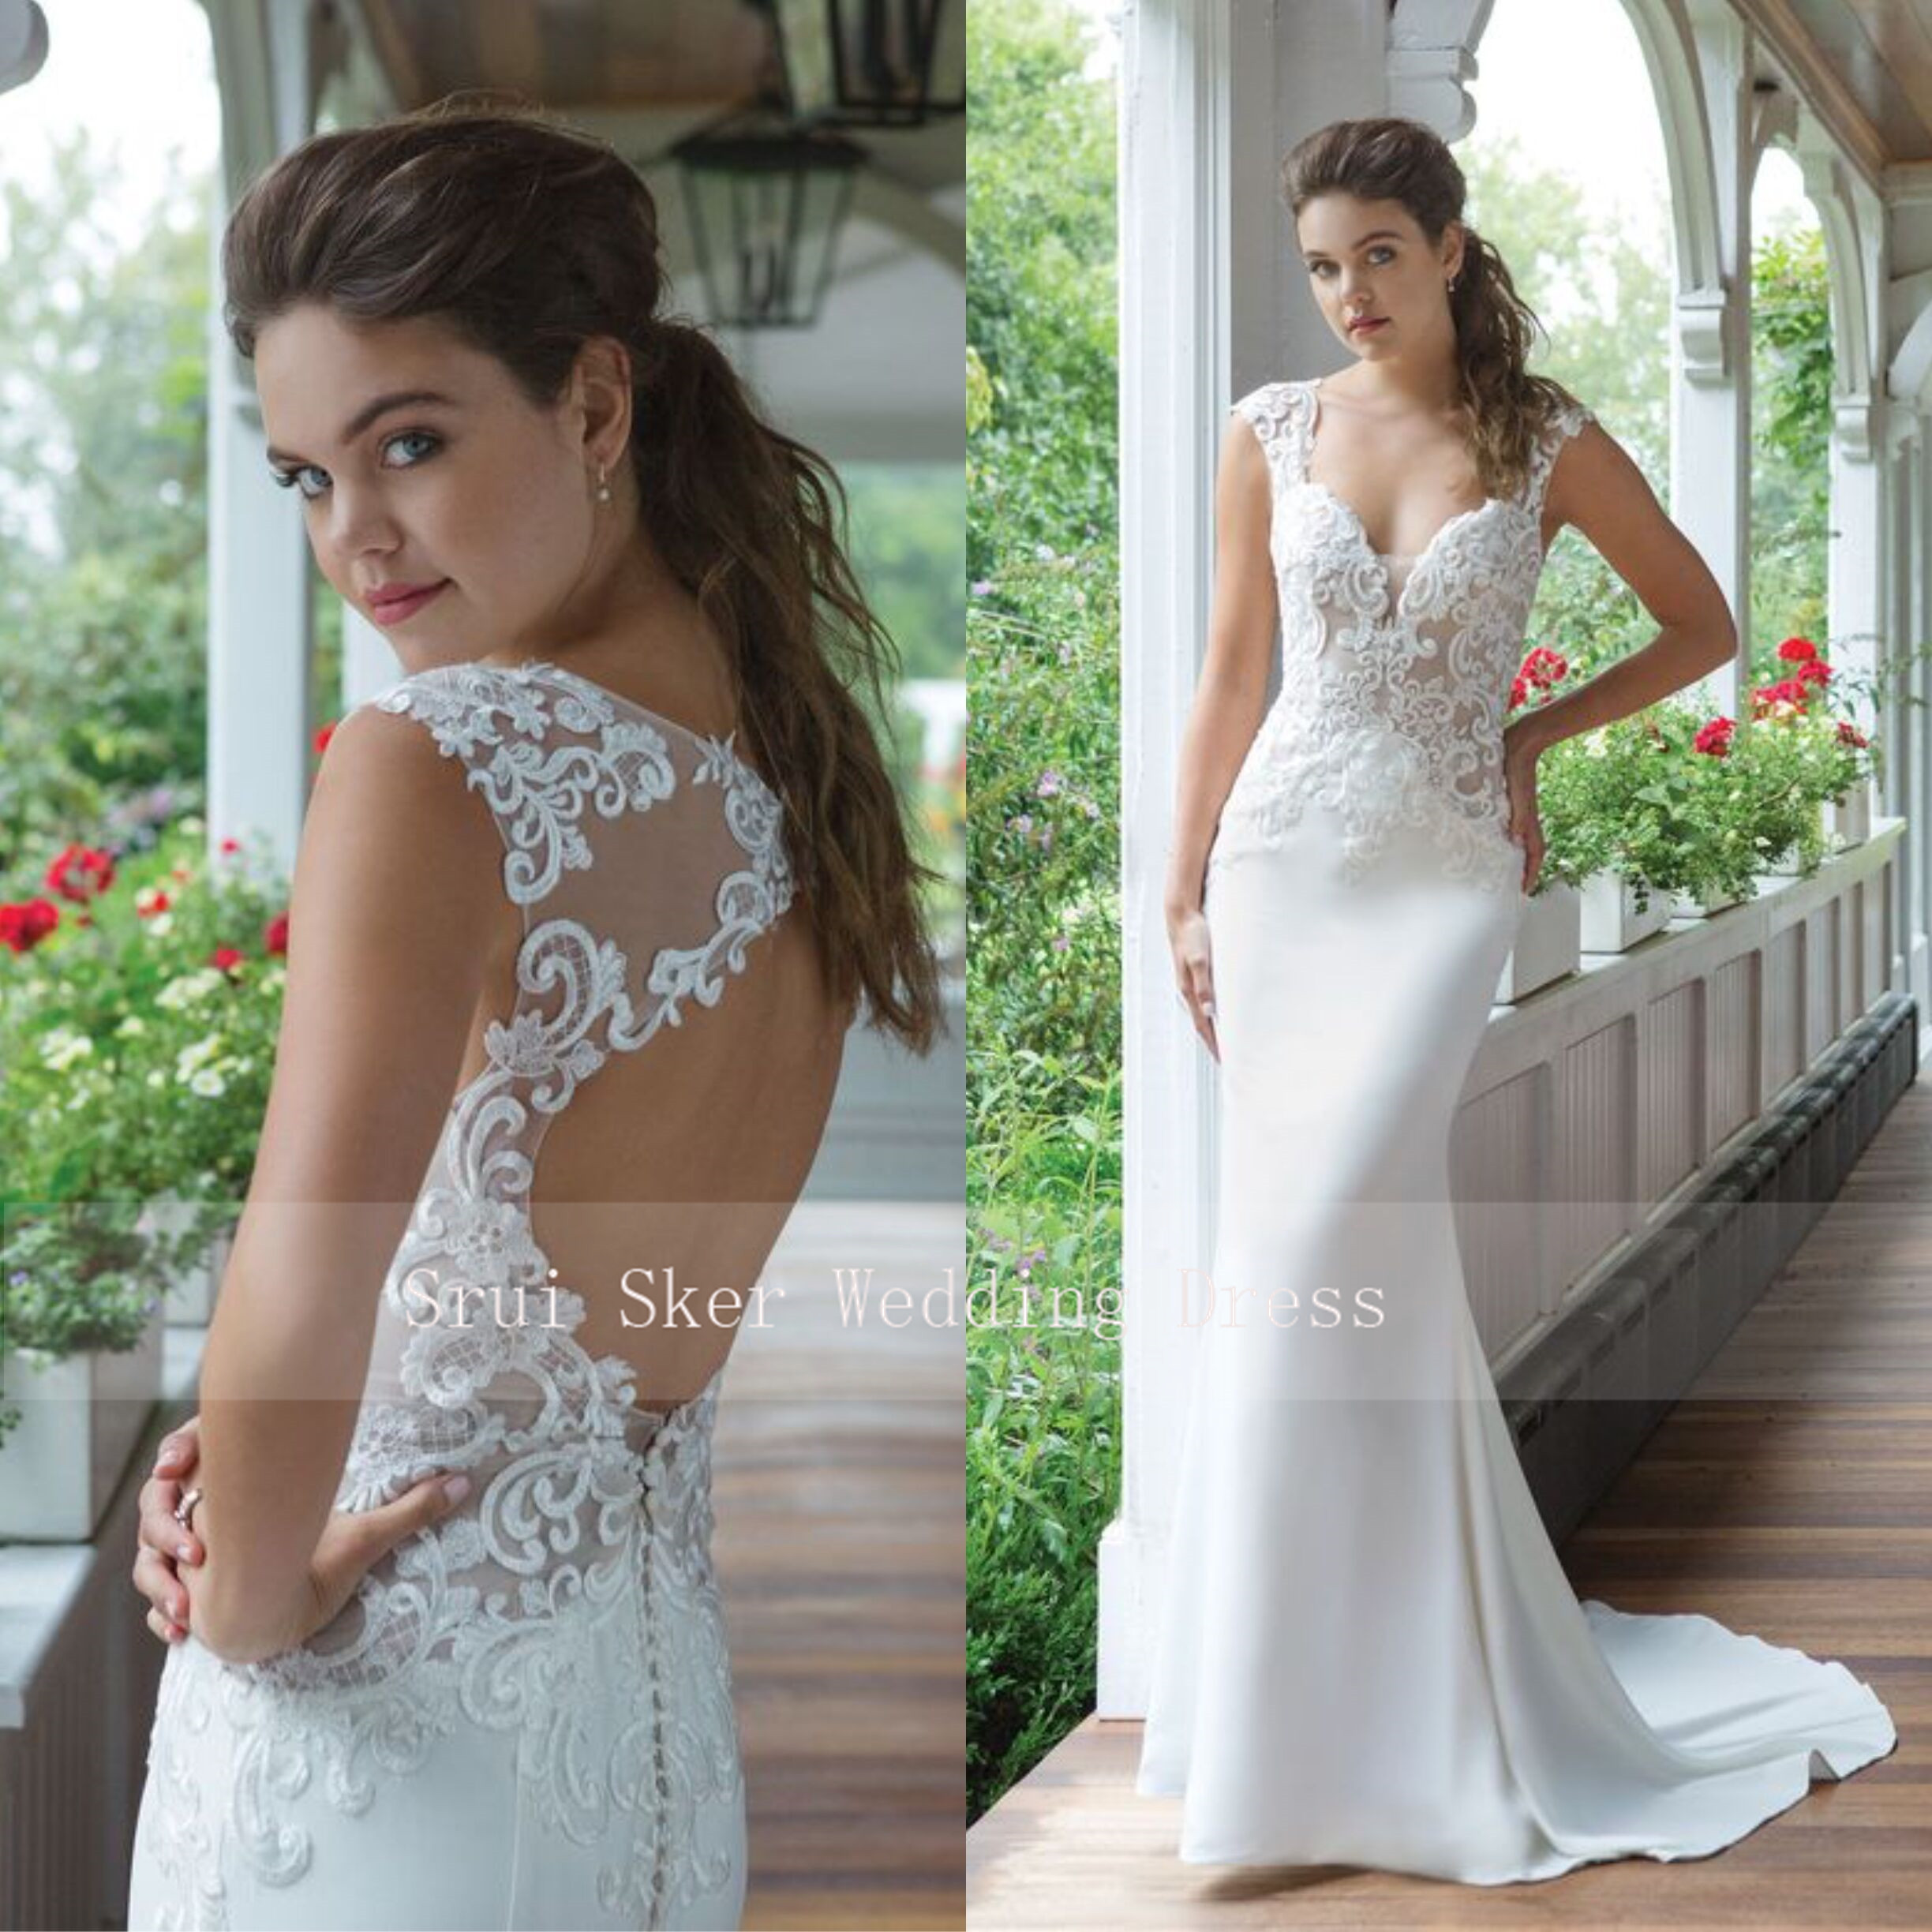 New Elegant White Wedding Dresses Sheath Fit And Flare Crepe Gown With Illusion Lace Bodice Vestidos De Novia Vintage